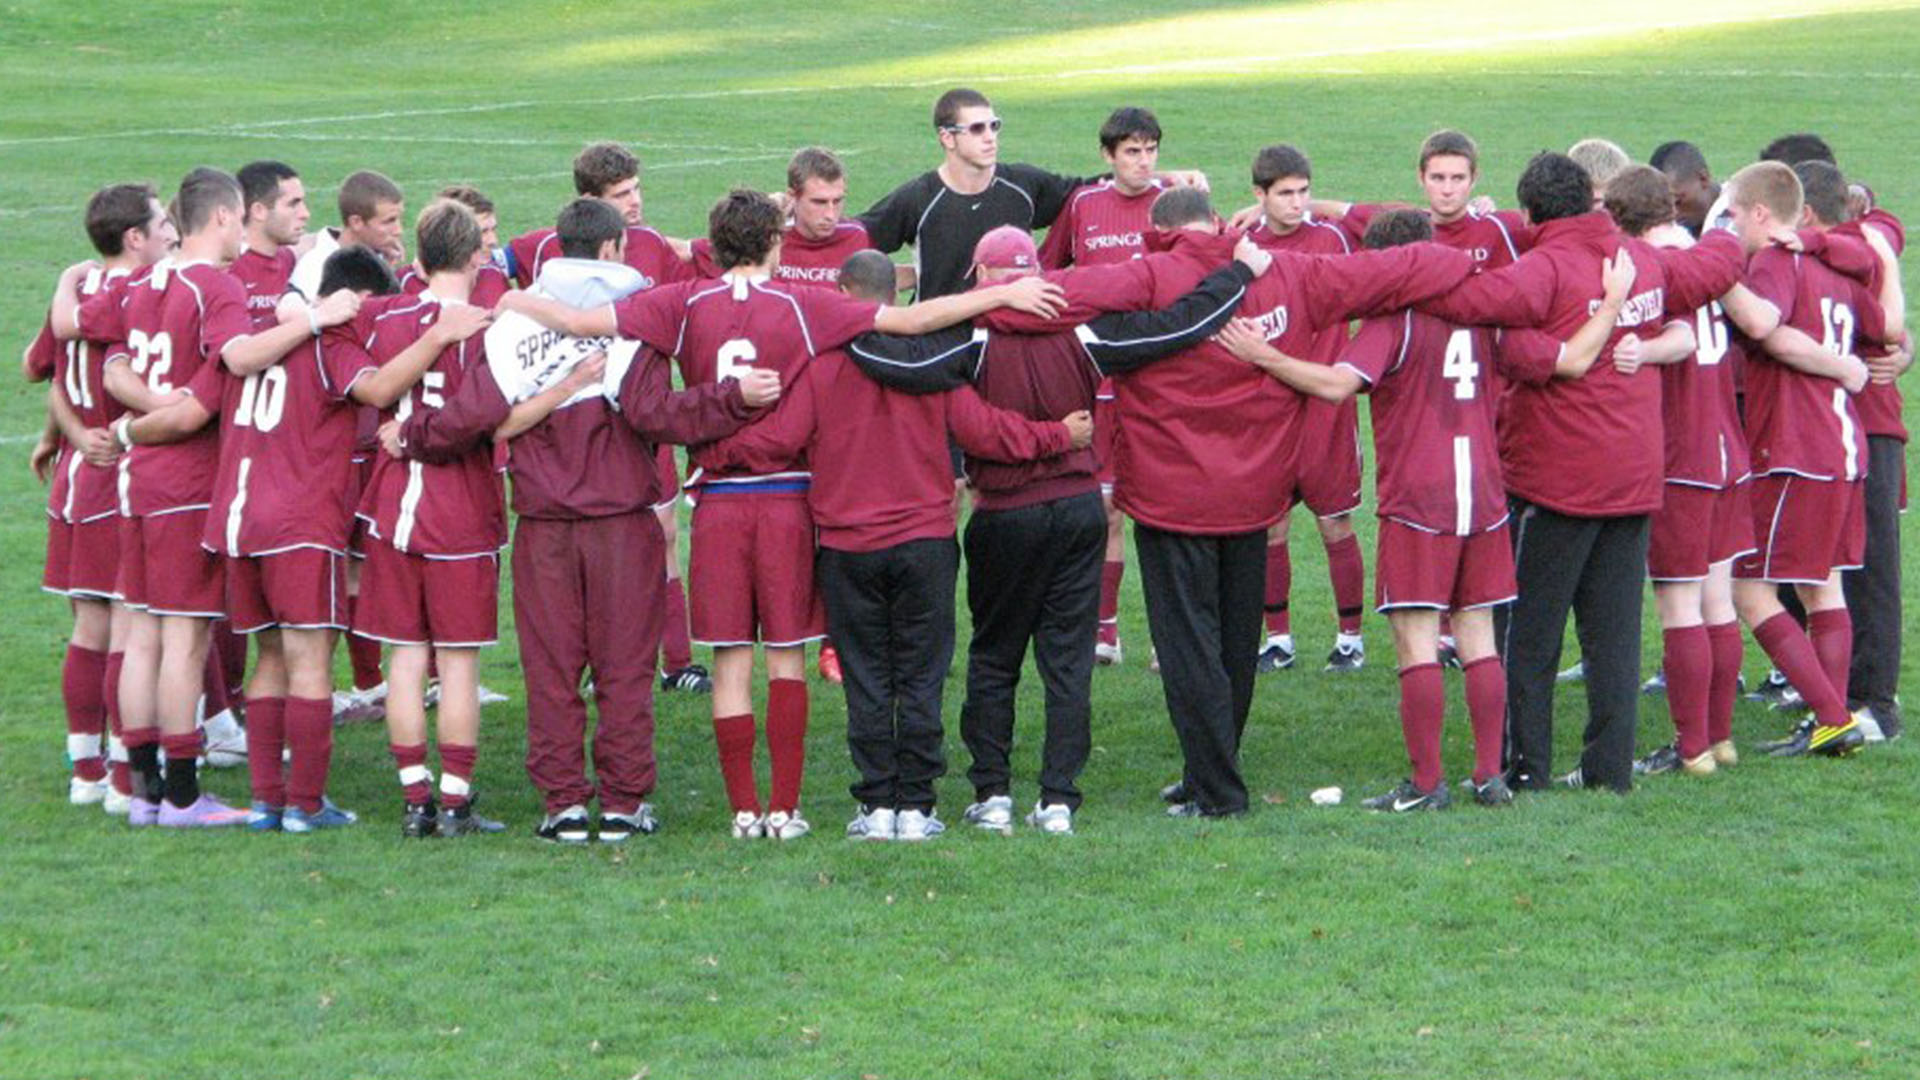 Soccer team huddled on the field.